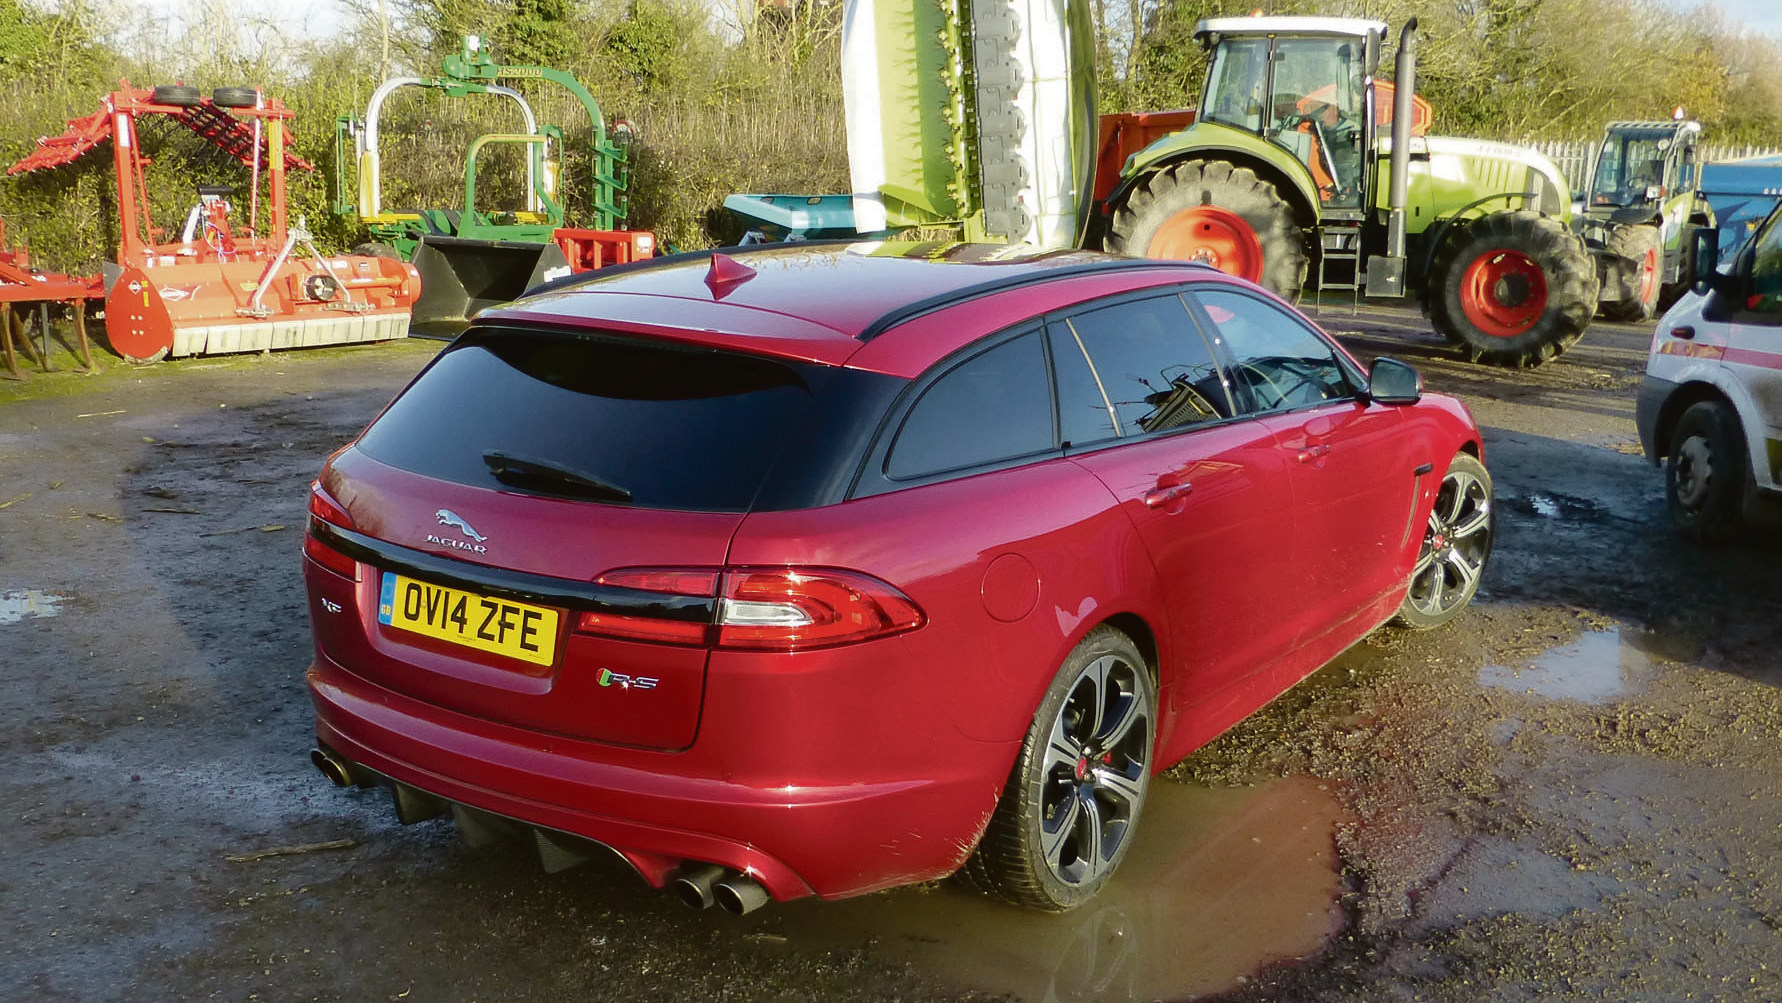 Road test: Jaguar XFR-S Sportbrake, one for the fantasy list